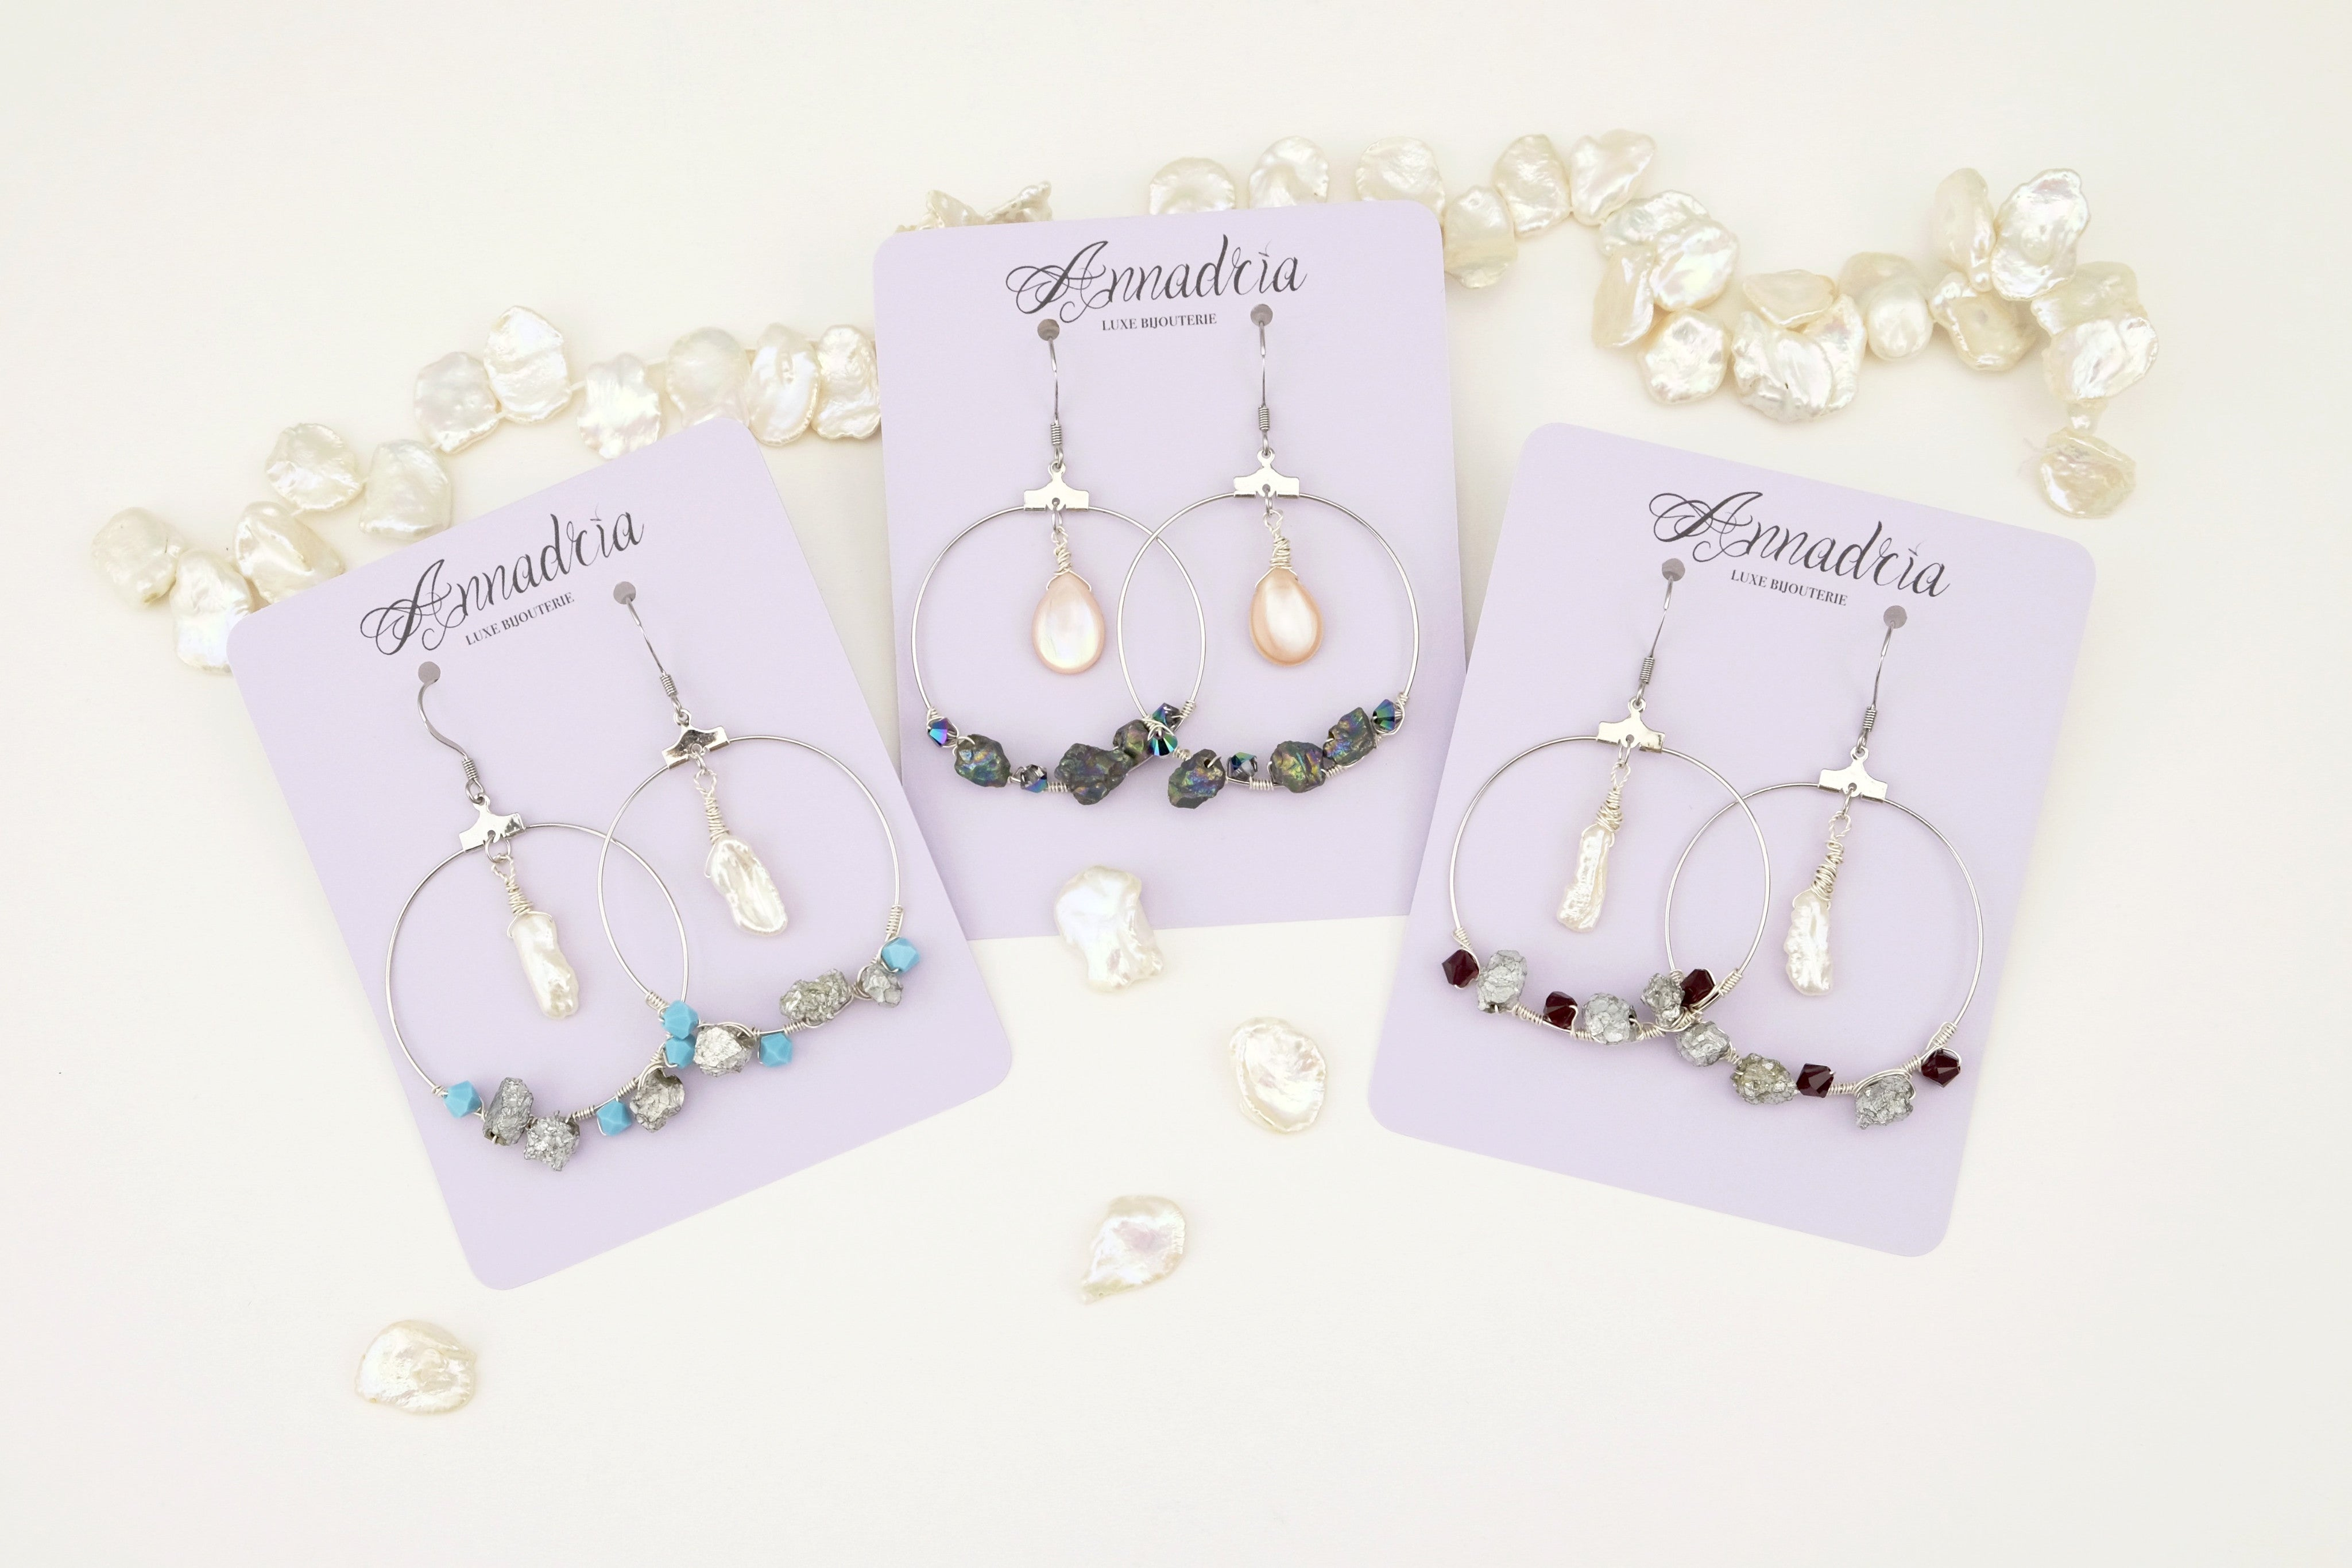 Fantine hoop earrings